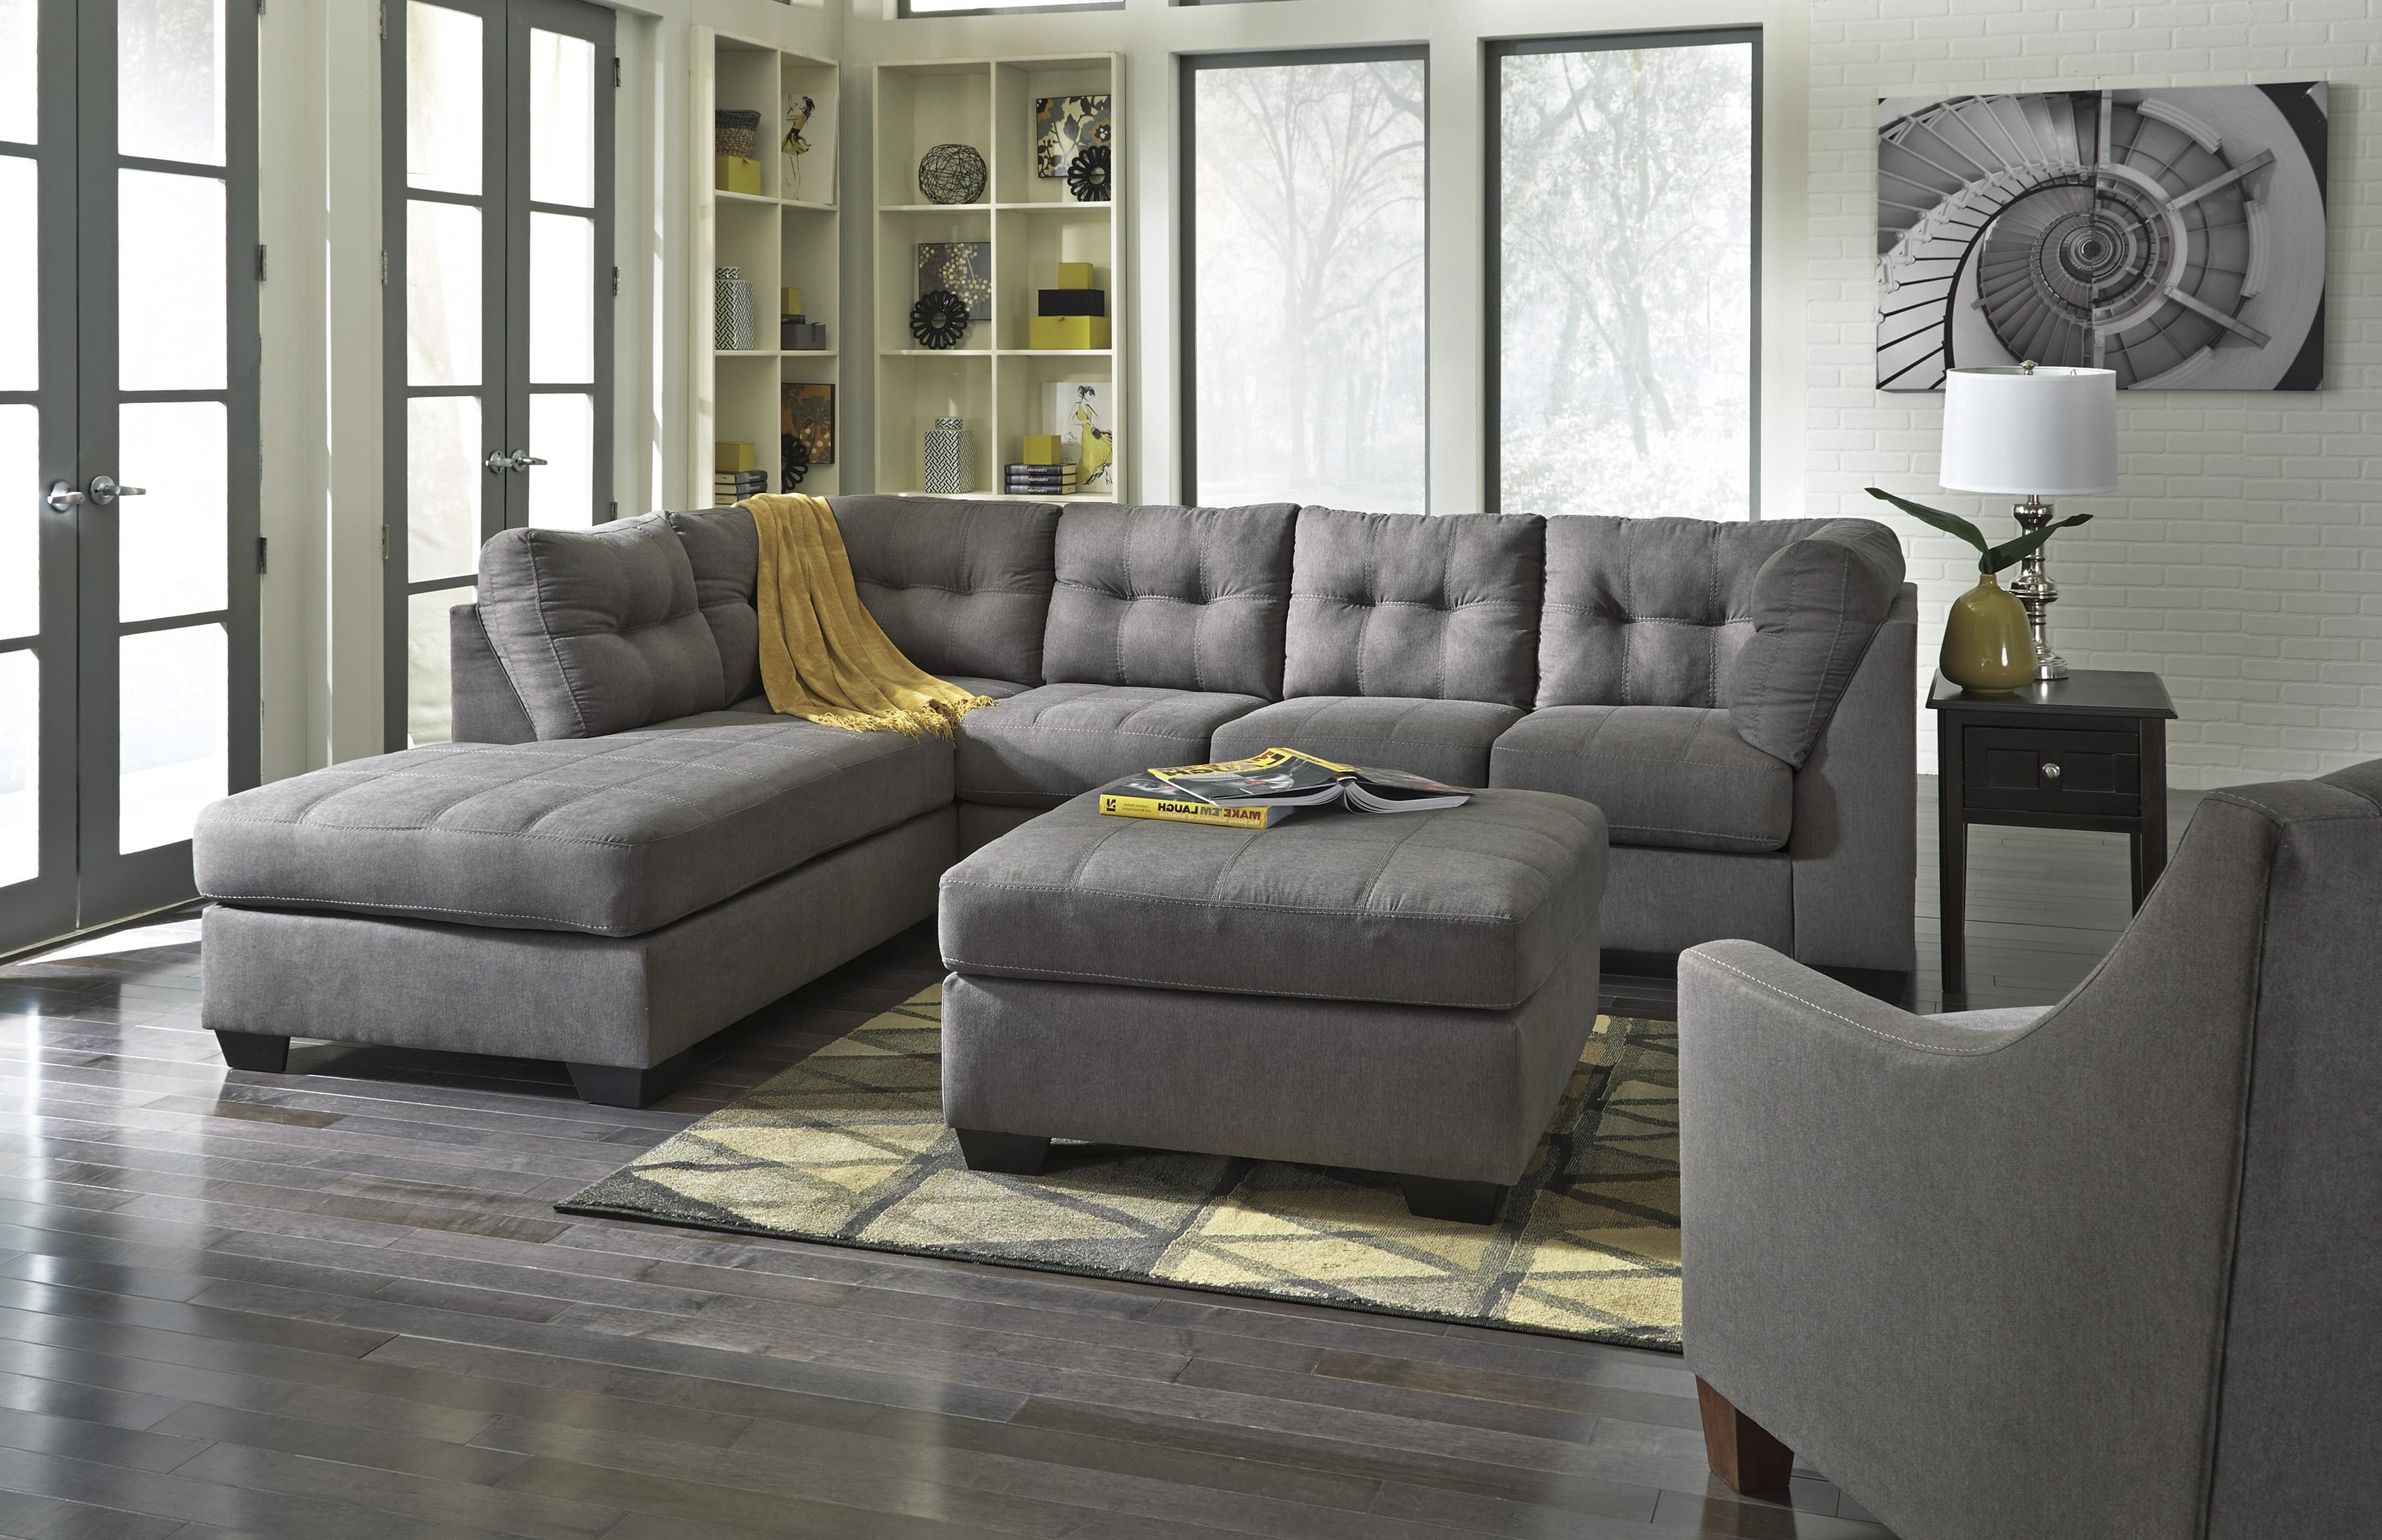 Sectionals With Chaise And Ottoman Inside 2019 Benchcraft Maier – Charcoal 2 Piece Sectional With Left Chaise (View 12 of 20)